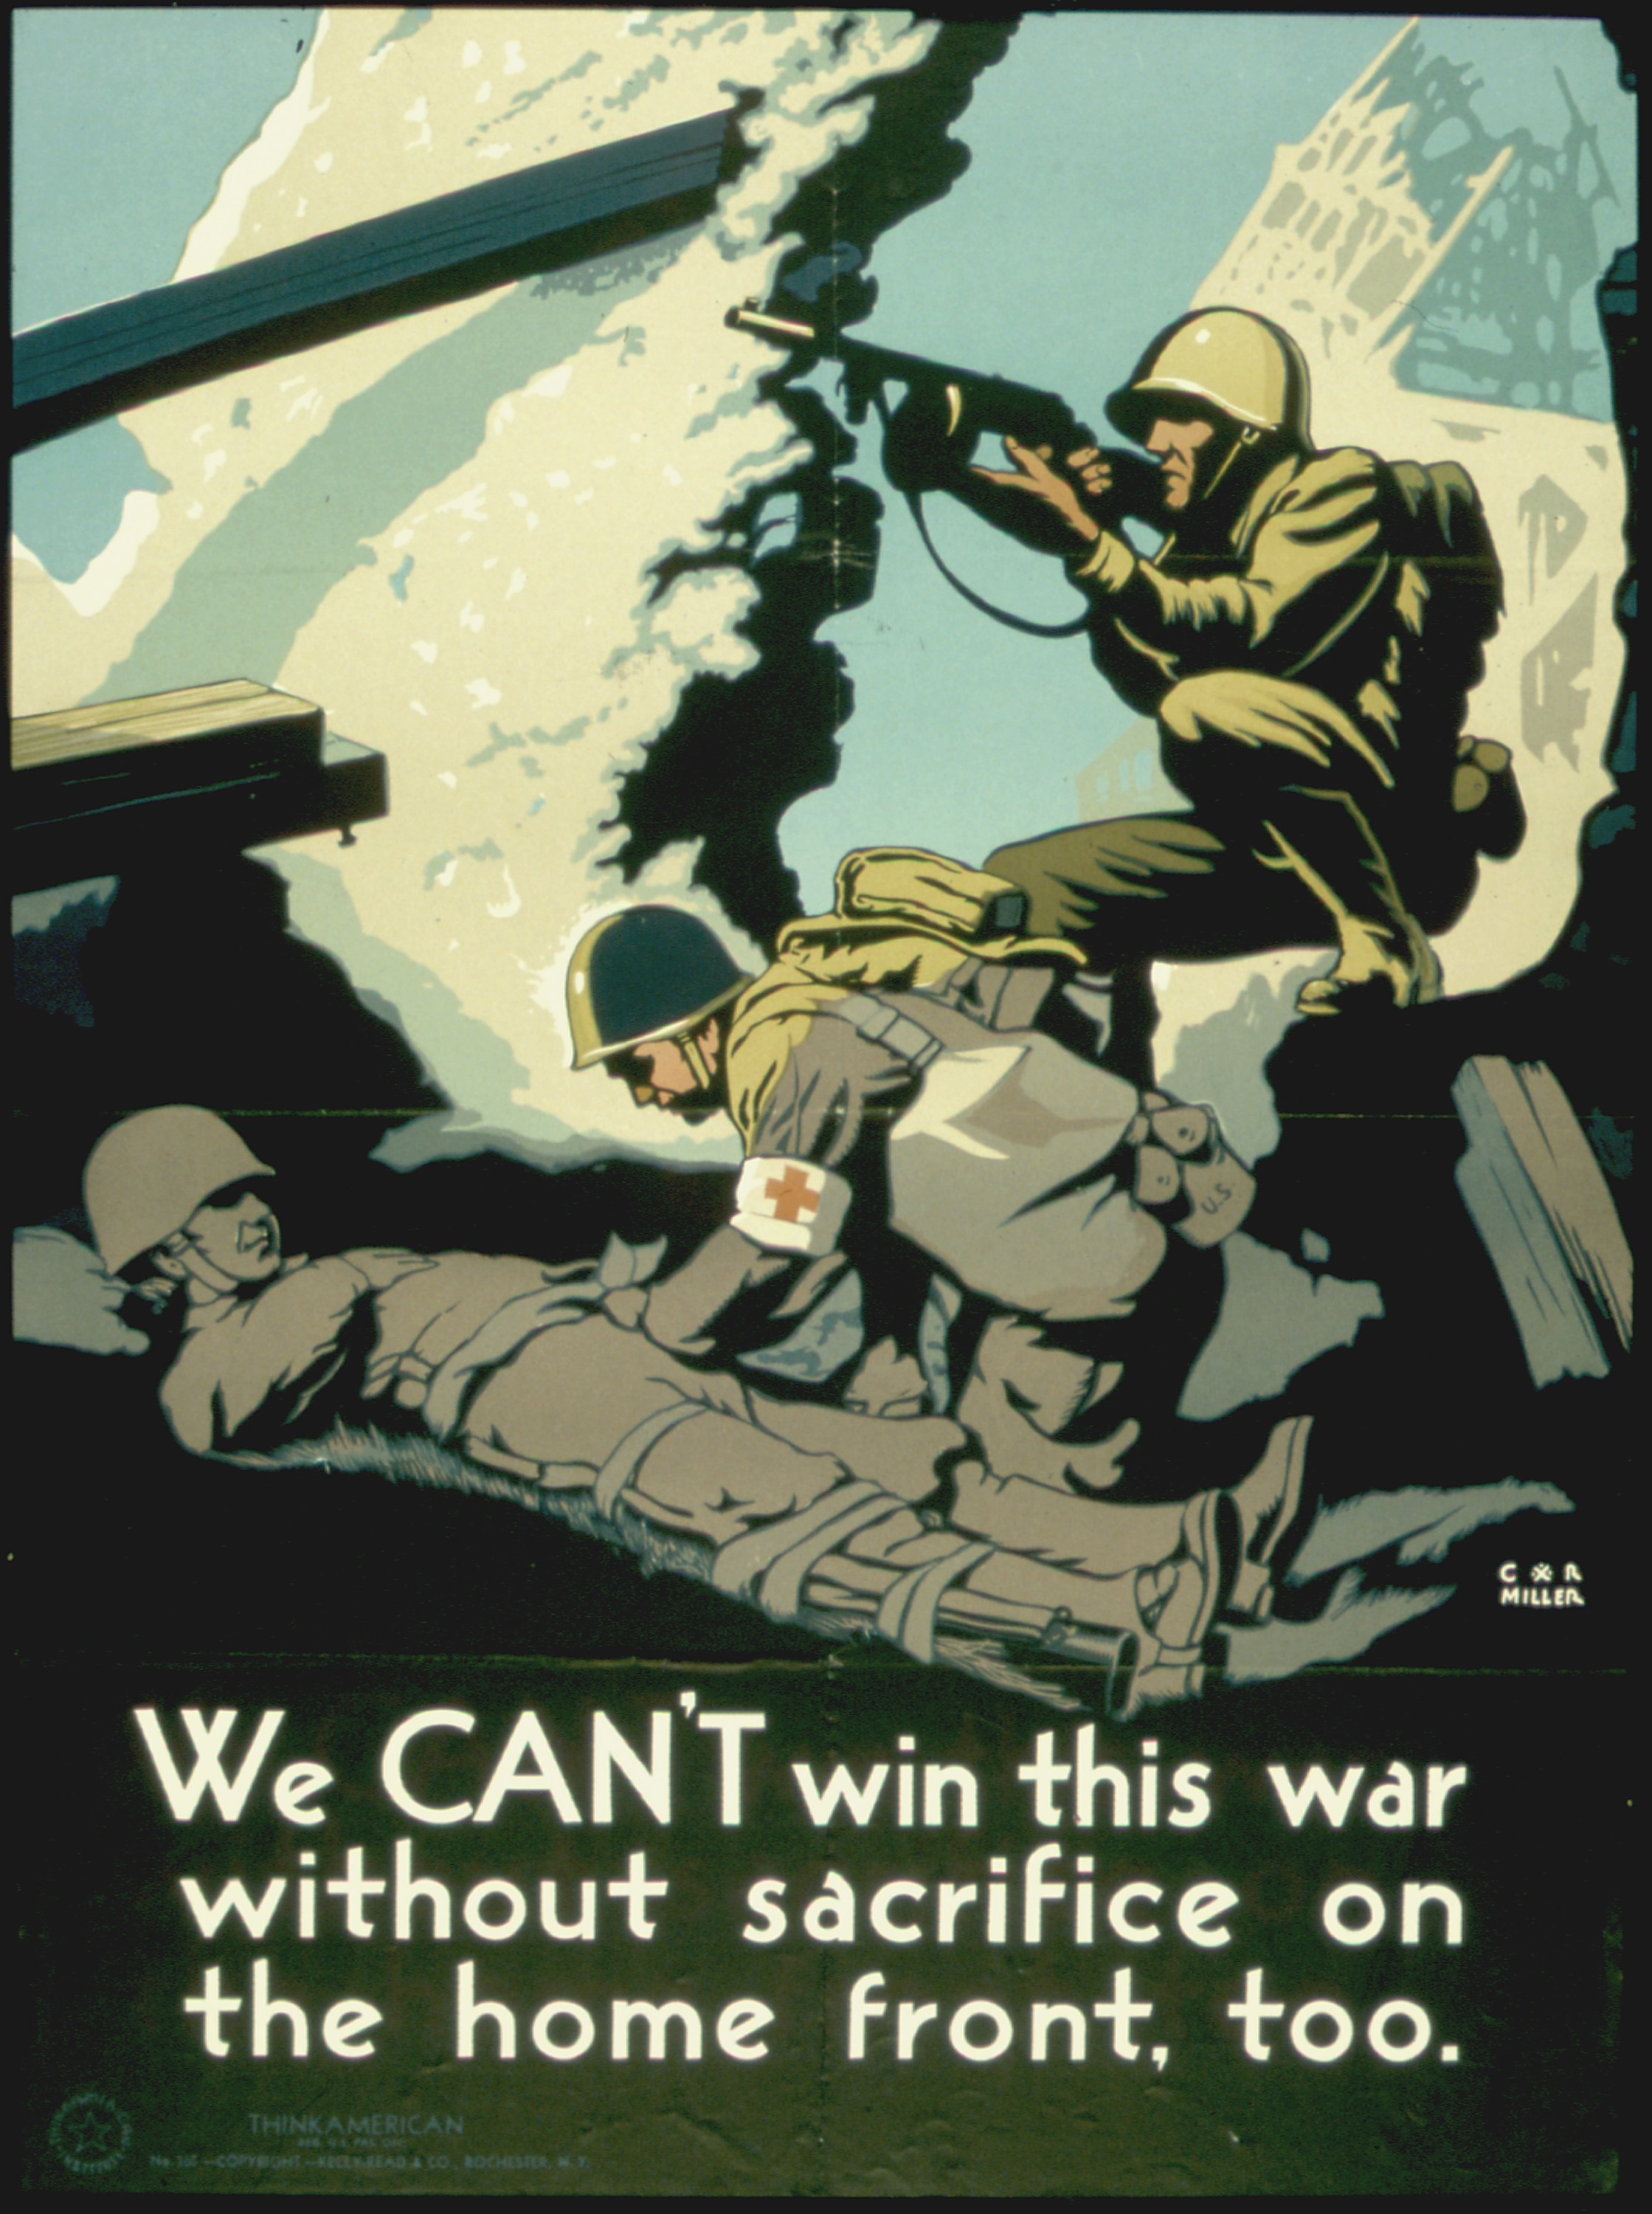 On you, as in war